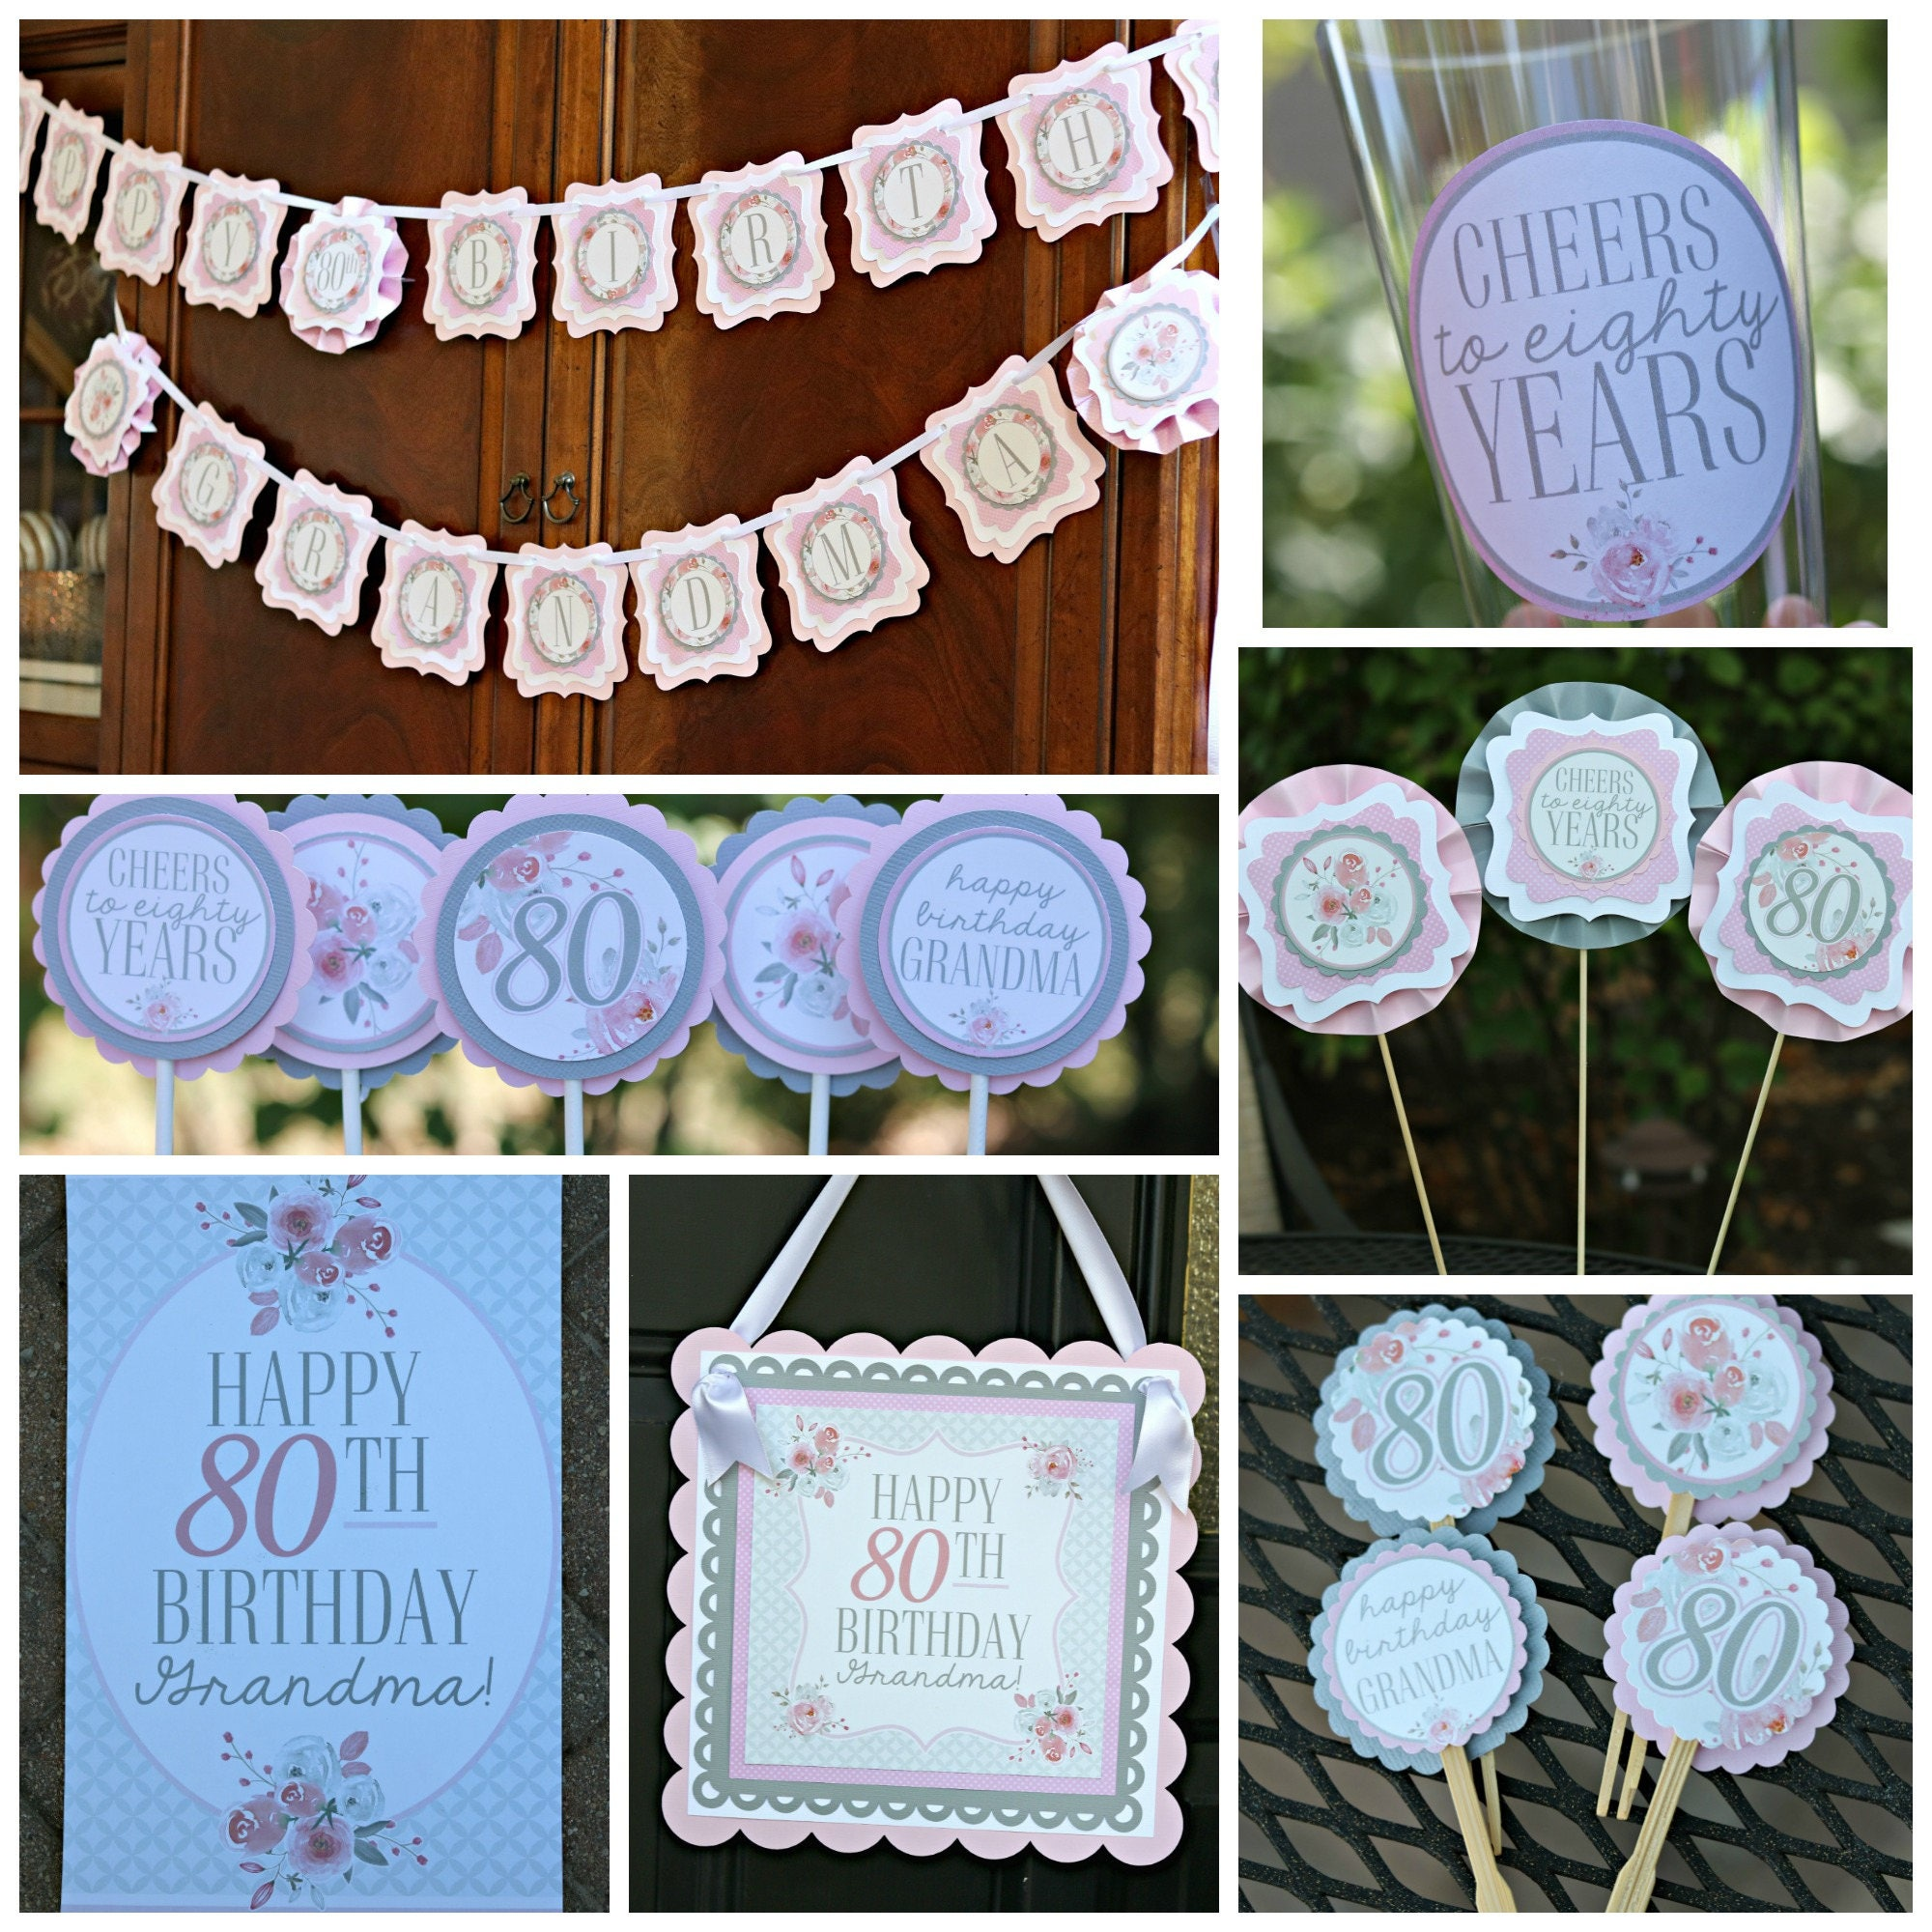 80TH BIRTHDAY DECORATIONS 80th Birthday Party Decor Ladies For Her